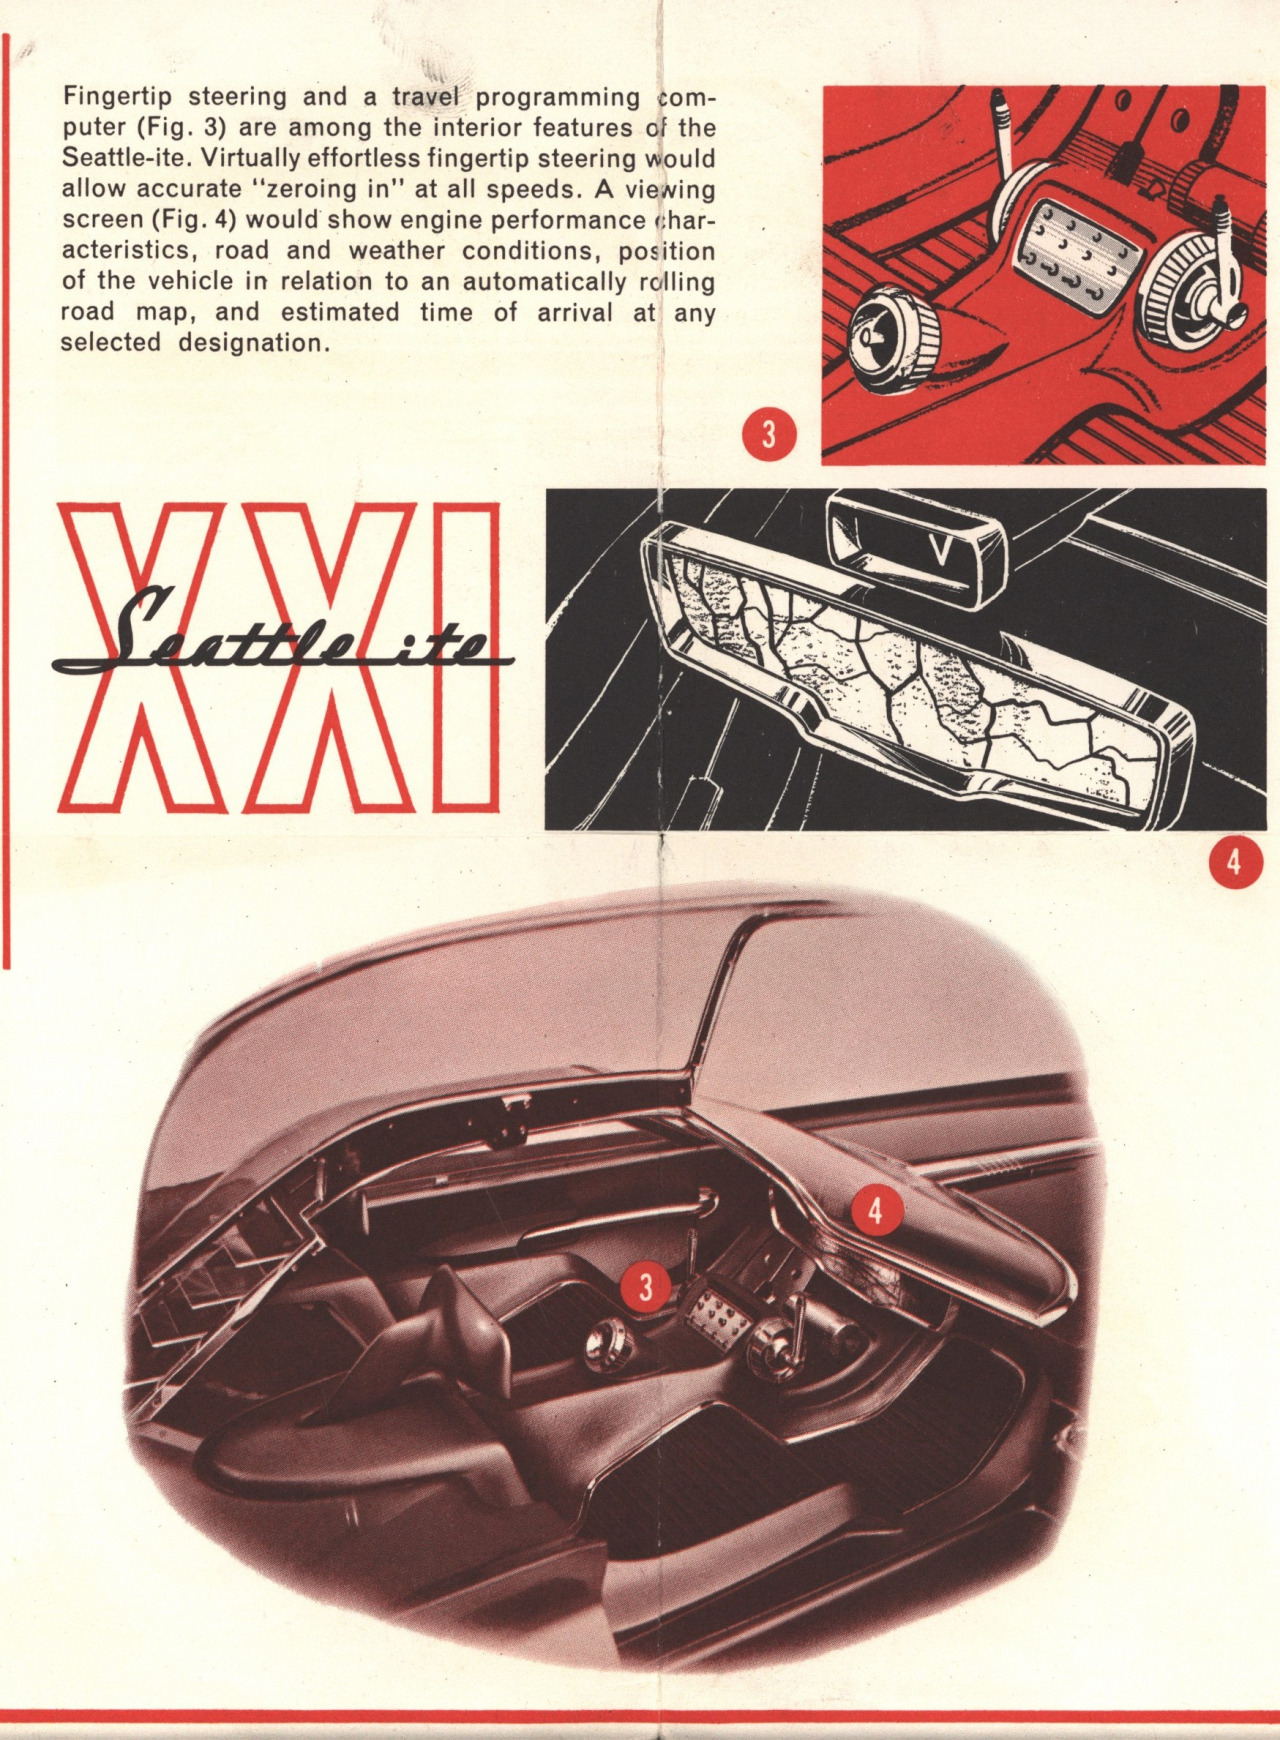 Ford Seattle-Ite XXI Concept Car (1962) - Old Concept Cars